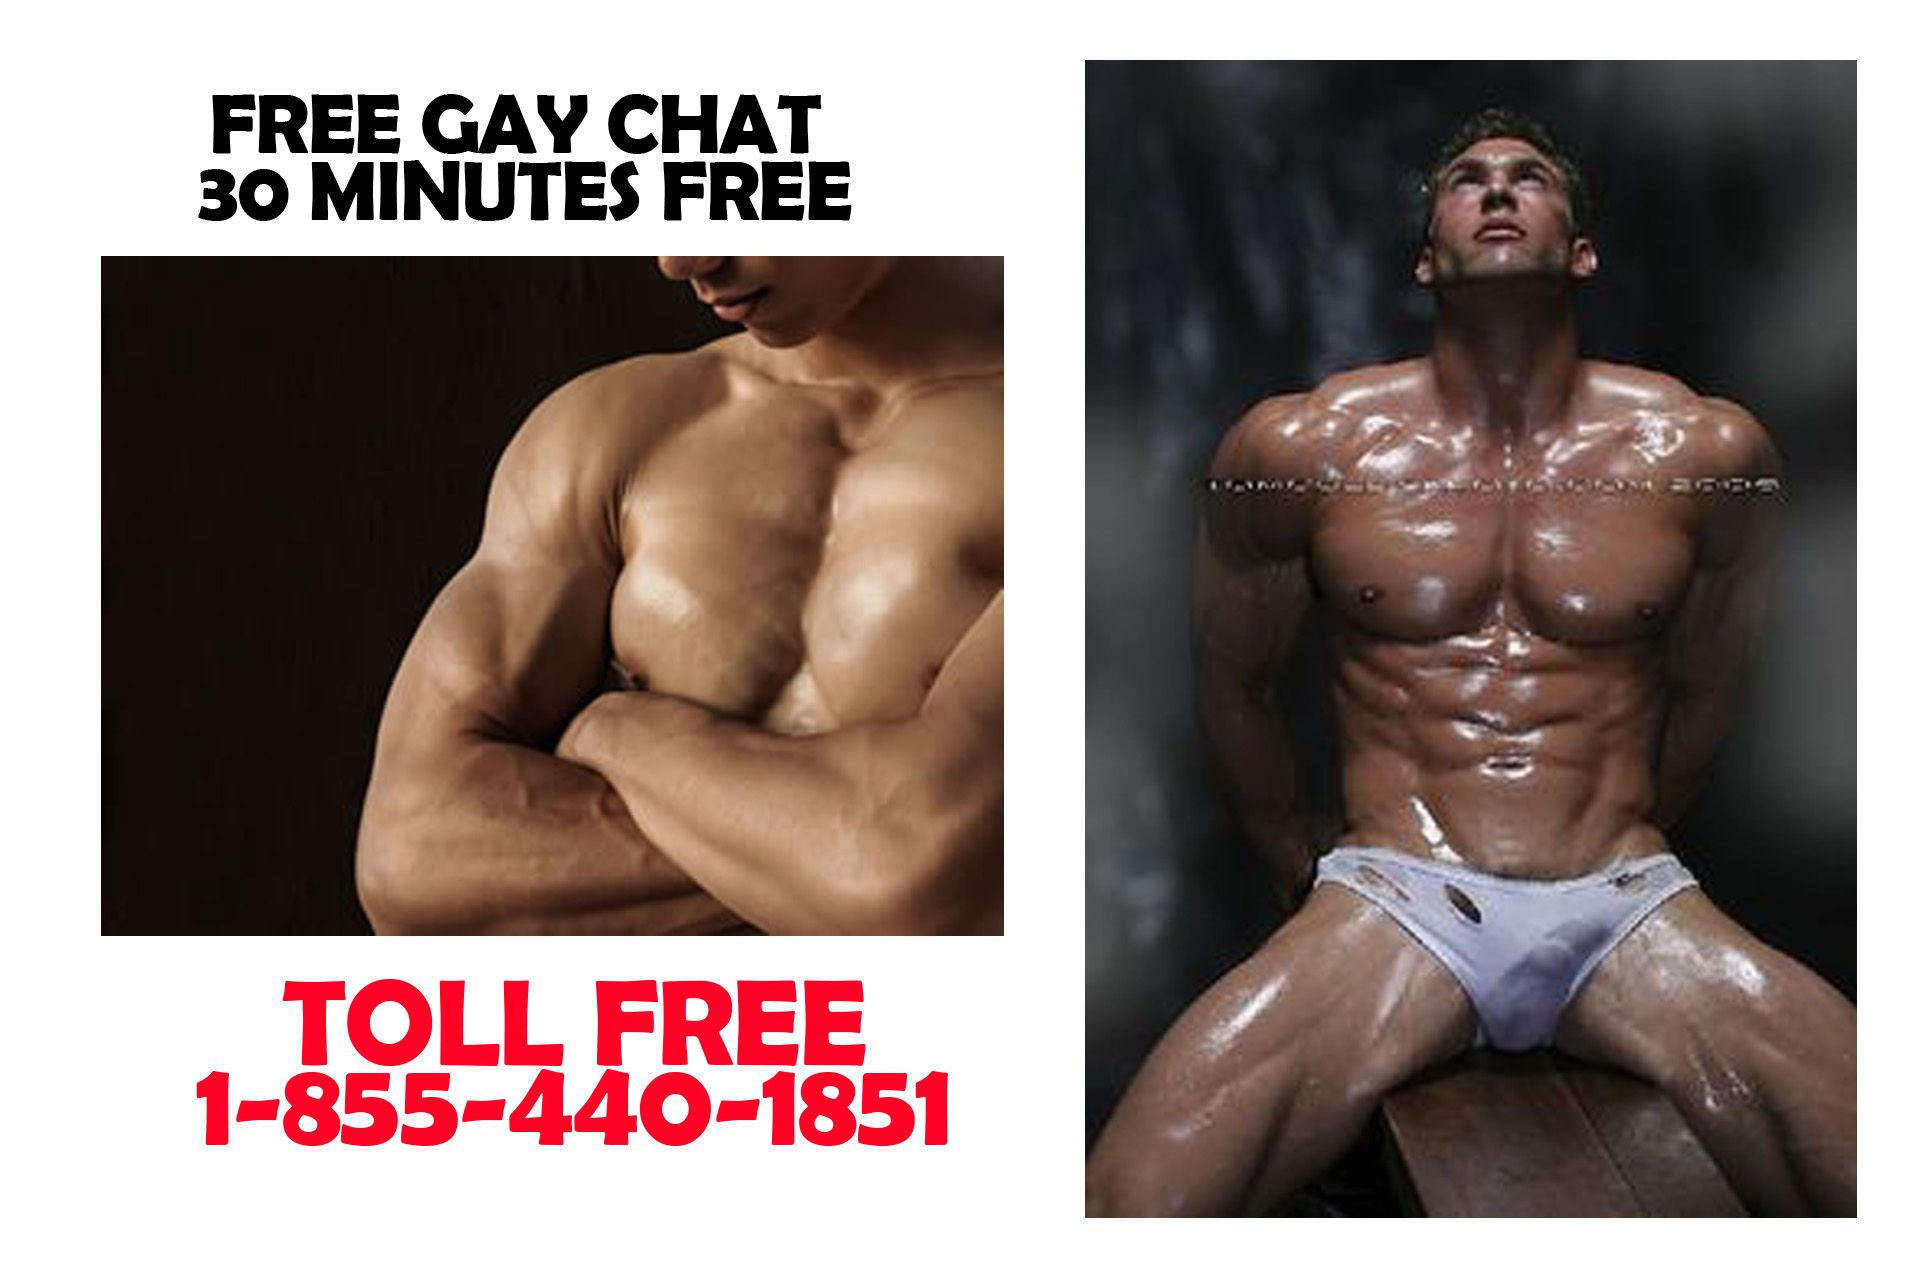 Free gay chat no sign up